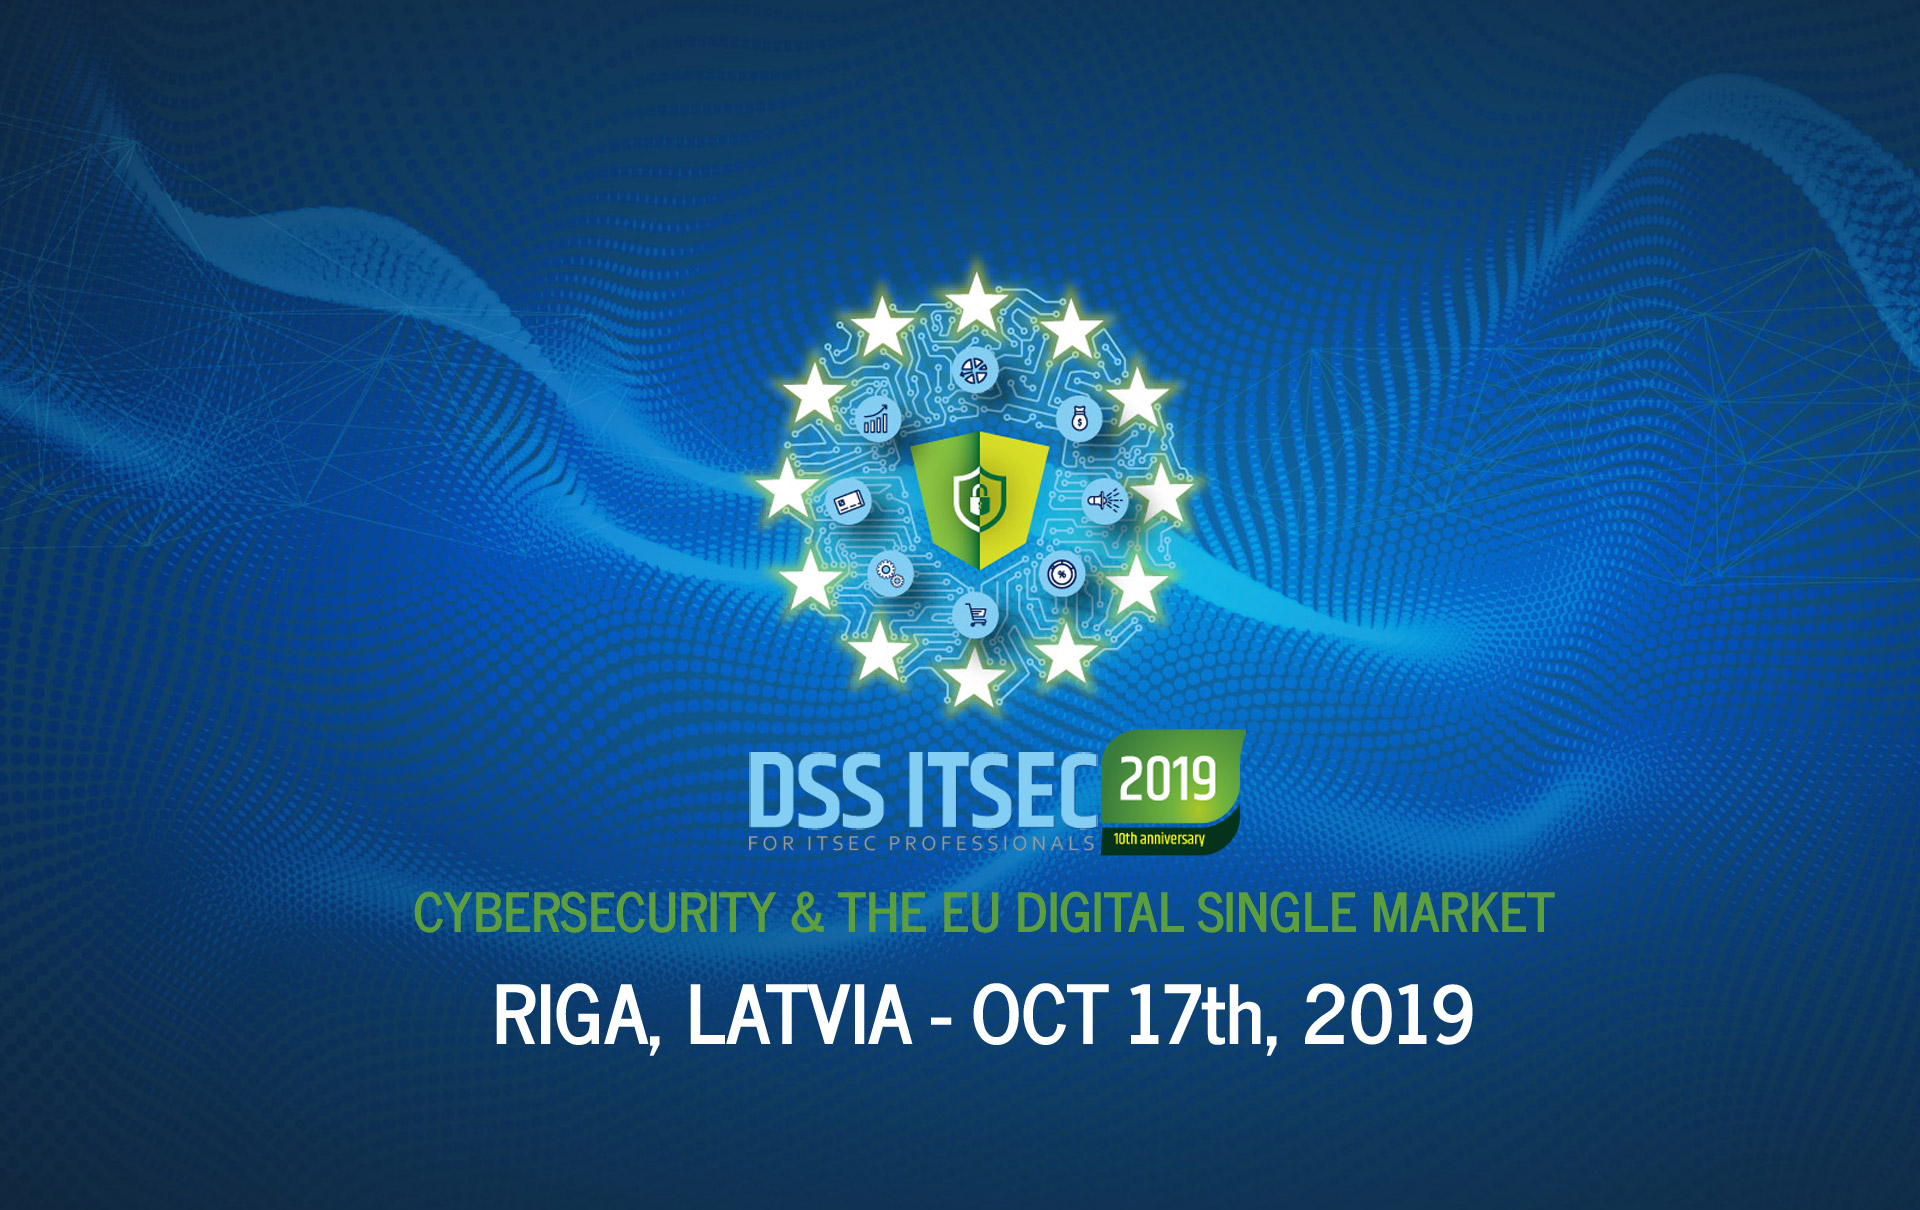 DSS IT SEC Cyber Security Conference Riga Latvia Oct 17